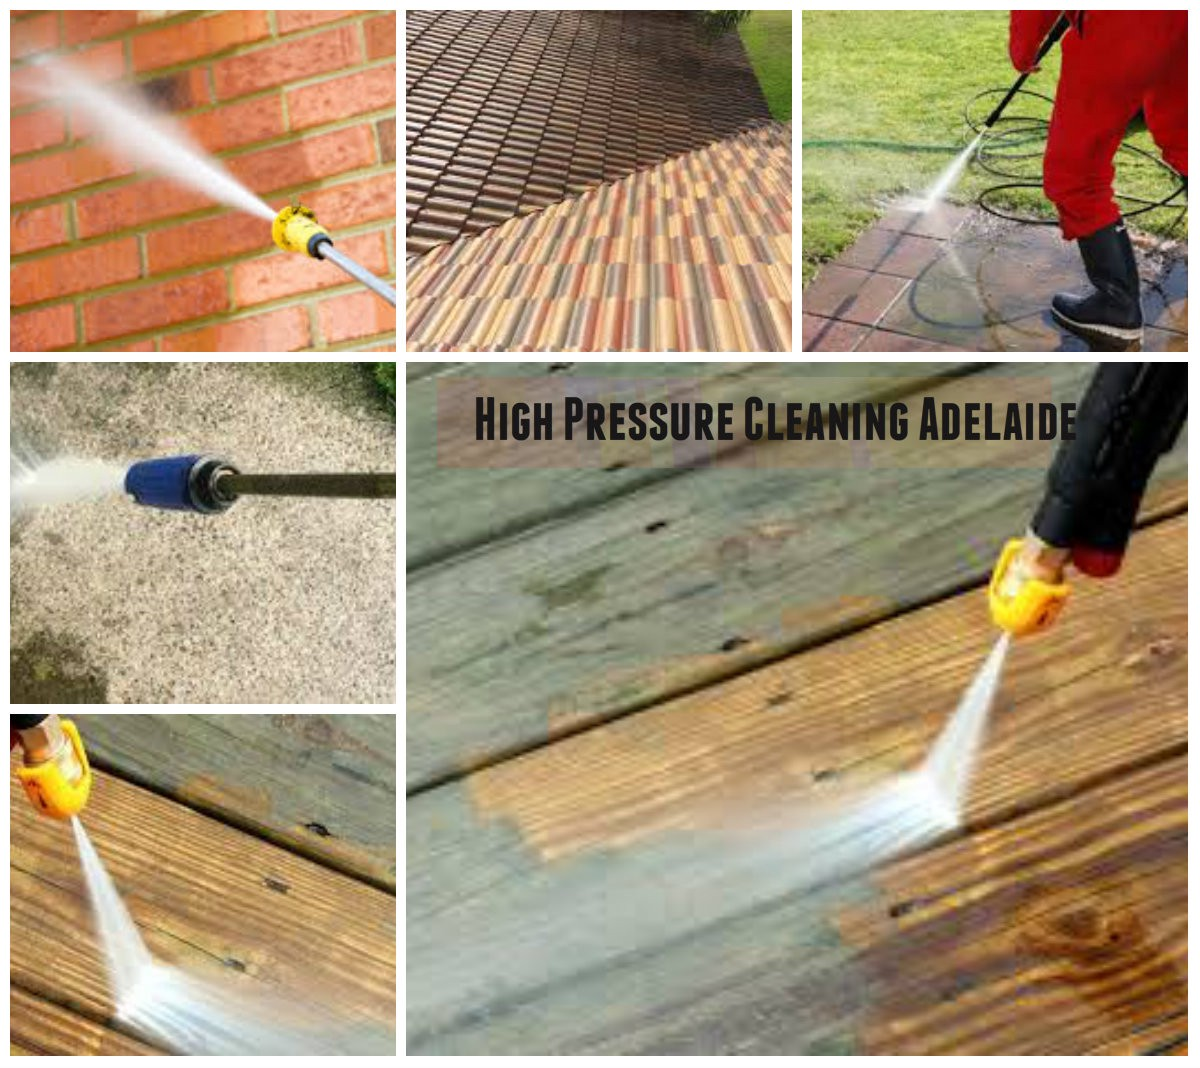 High pressure cleaning services adelaide from roof doctors australia - Using water pressure roof cleaning ...